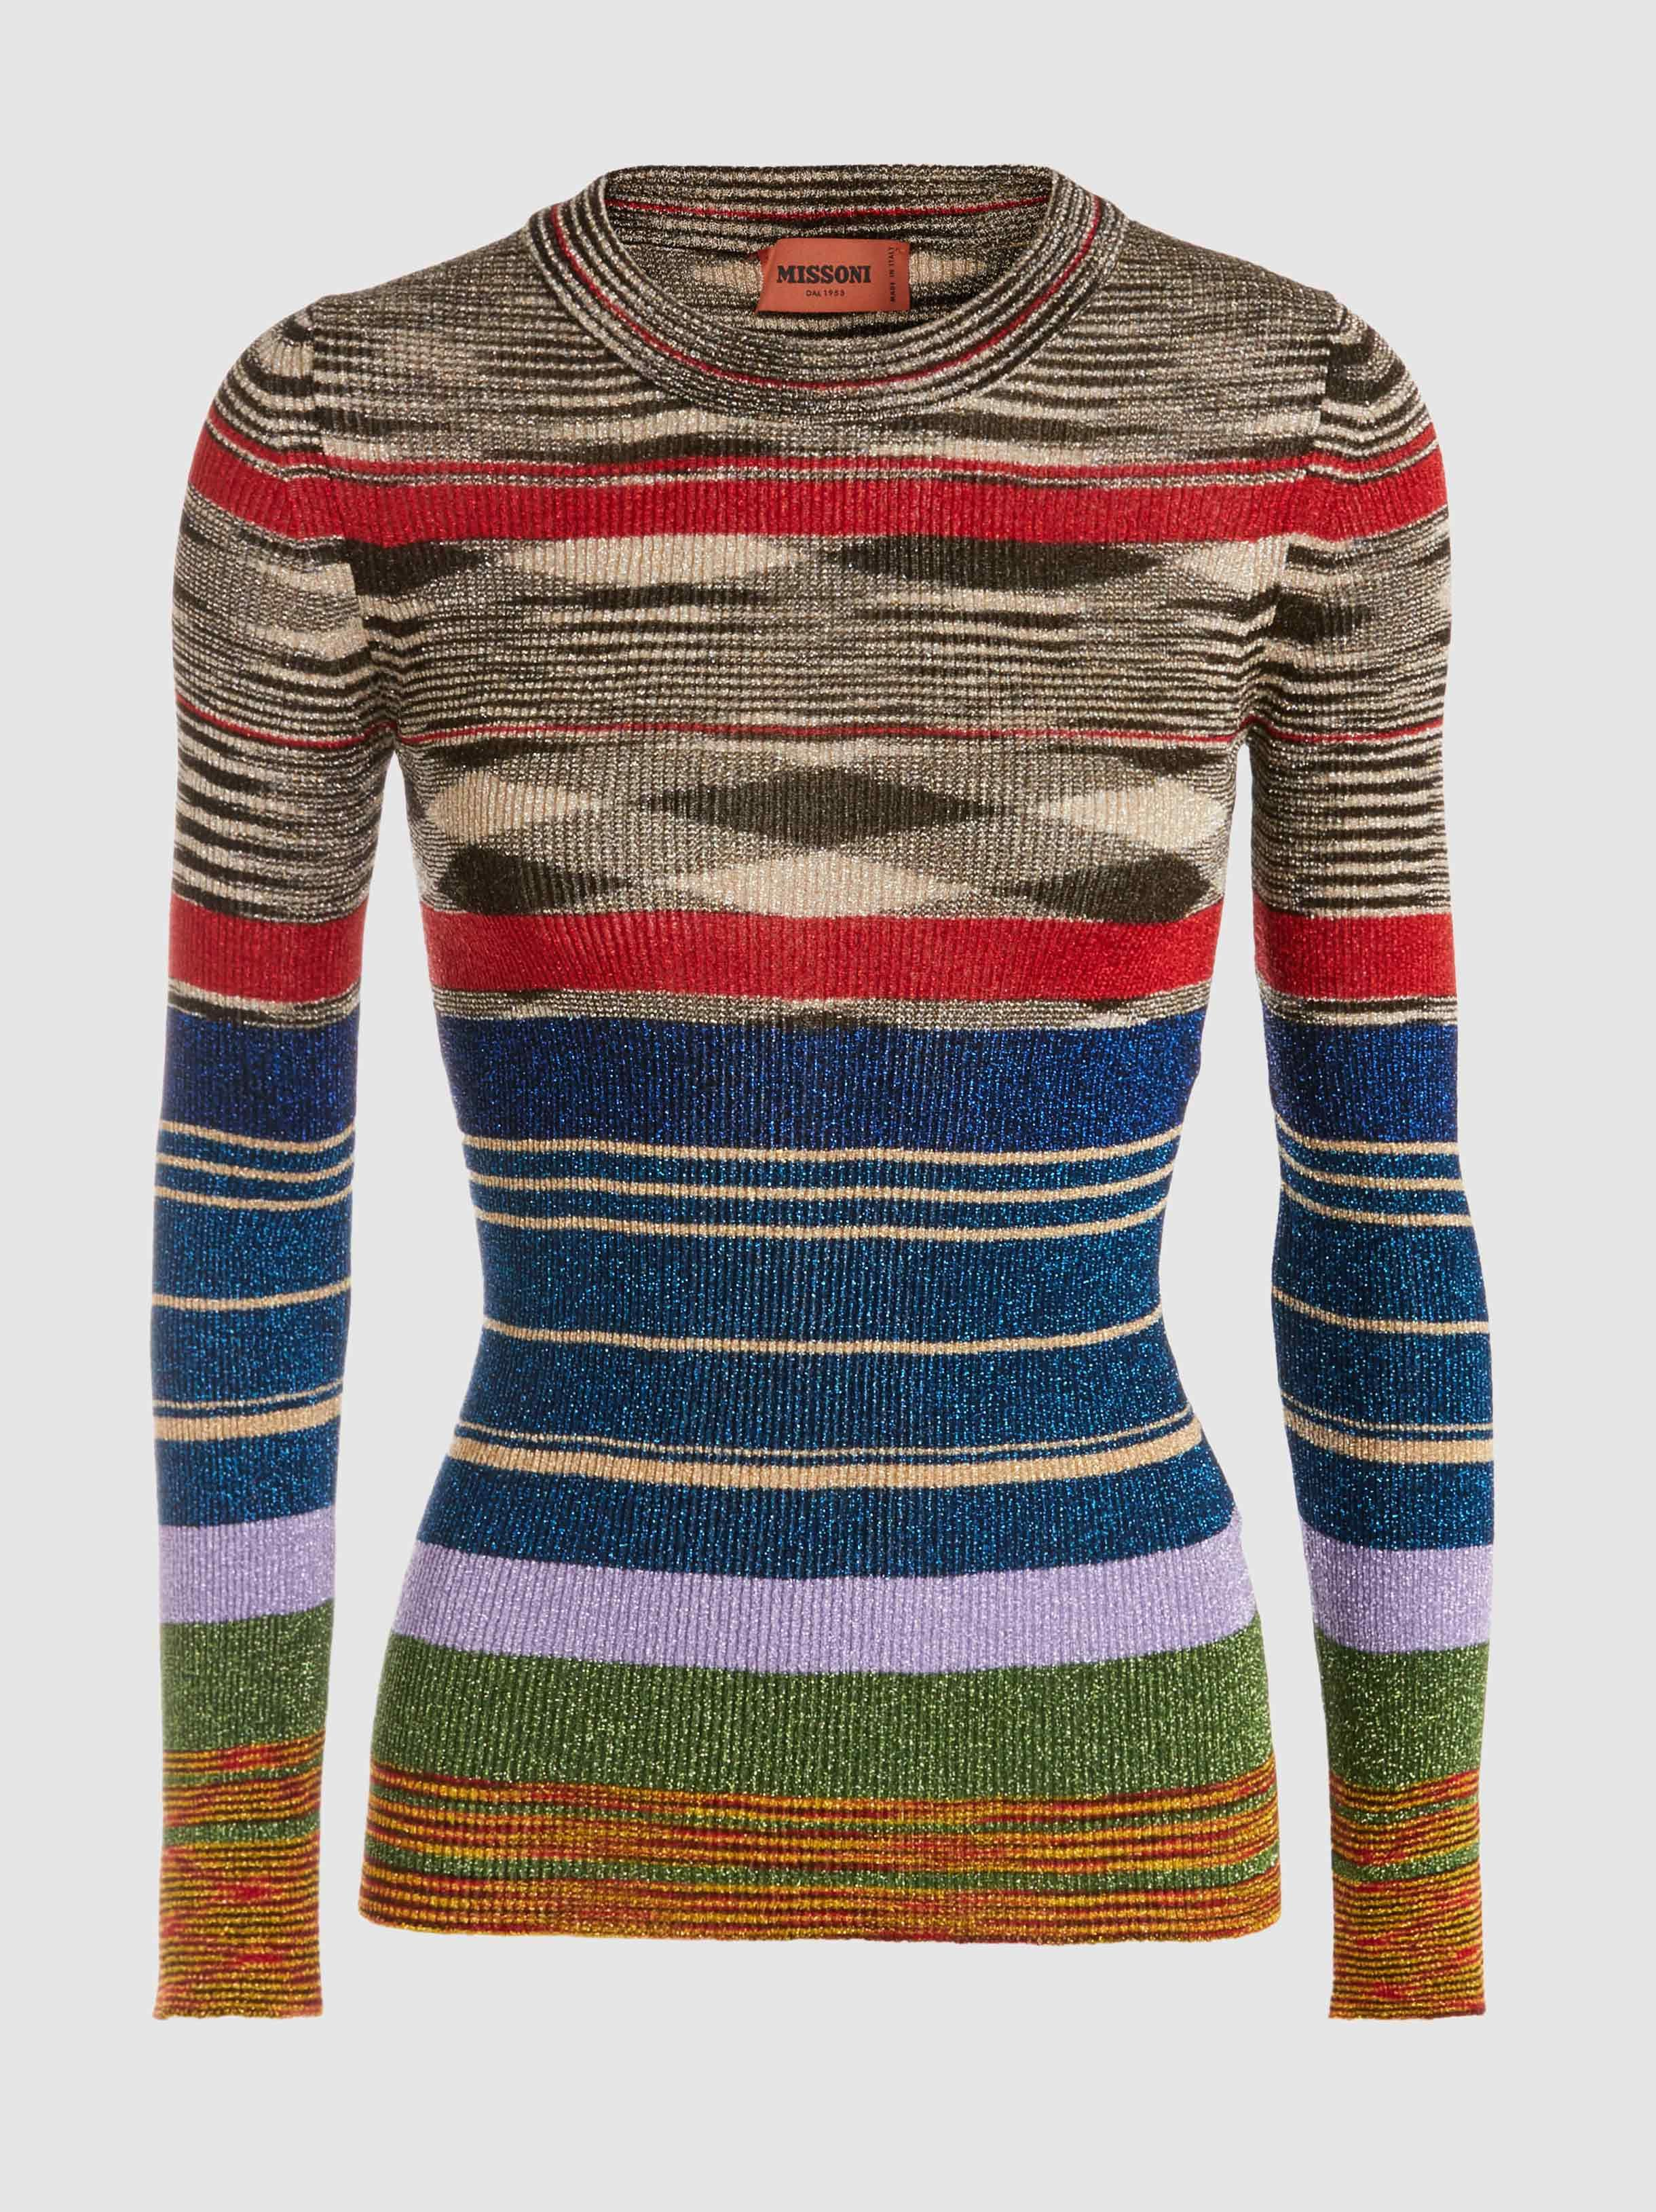 Metallic Ribbed-Knit Sweater Missoni Very Cheap Clearance Low Price Fee Shipping For Sale Cheap Online Buy Cheap Outlet Locations Cheap Sale Limited Edition OxW69sX